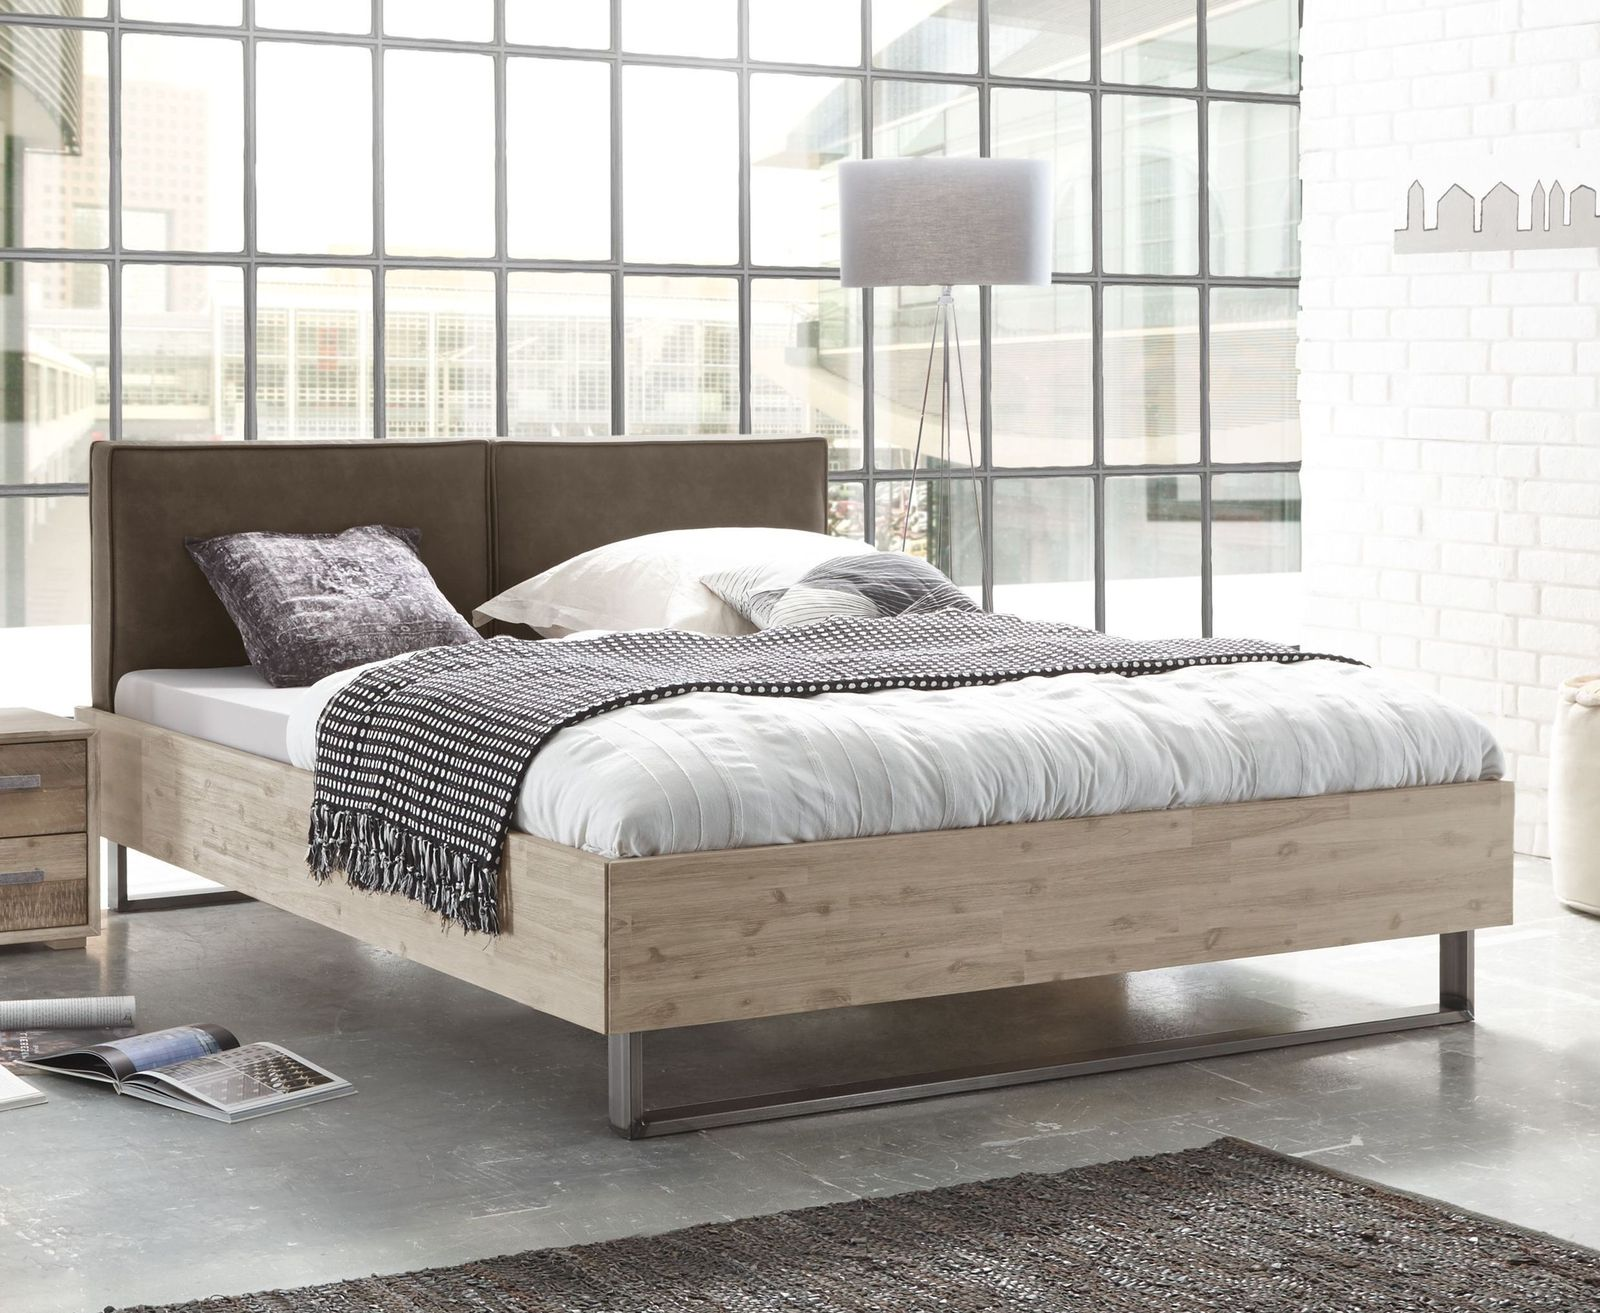 industrial style bett mit kufen und kunstleder kopfteil tampere. Black Bedroom Furniture Sets. Home Design Ideas